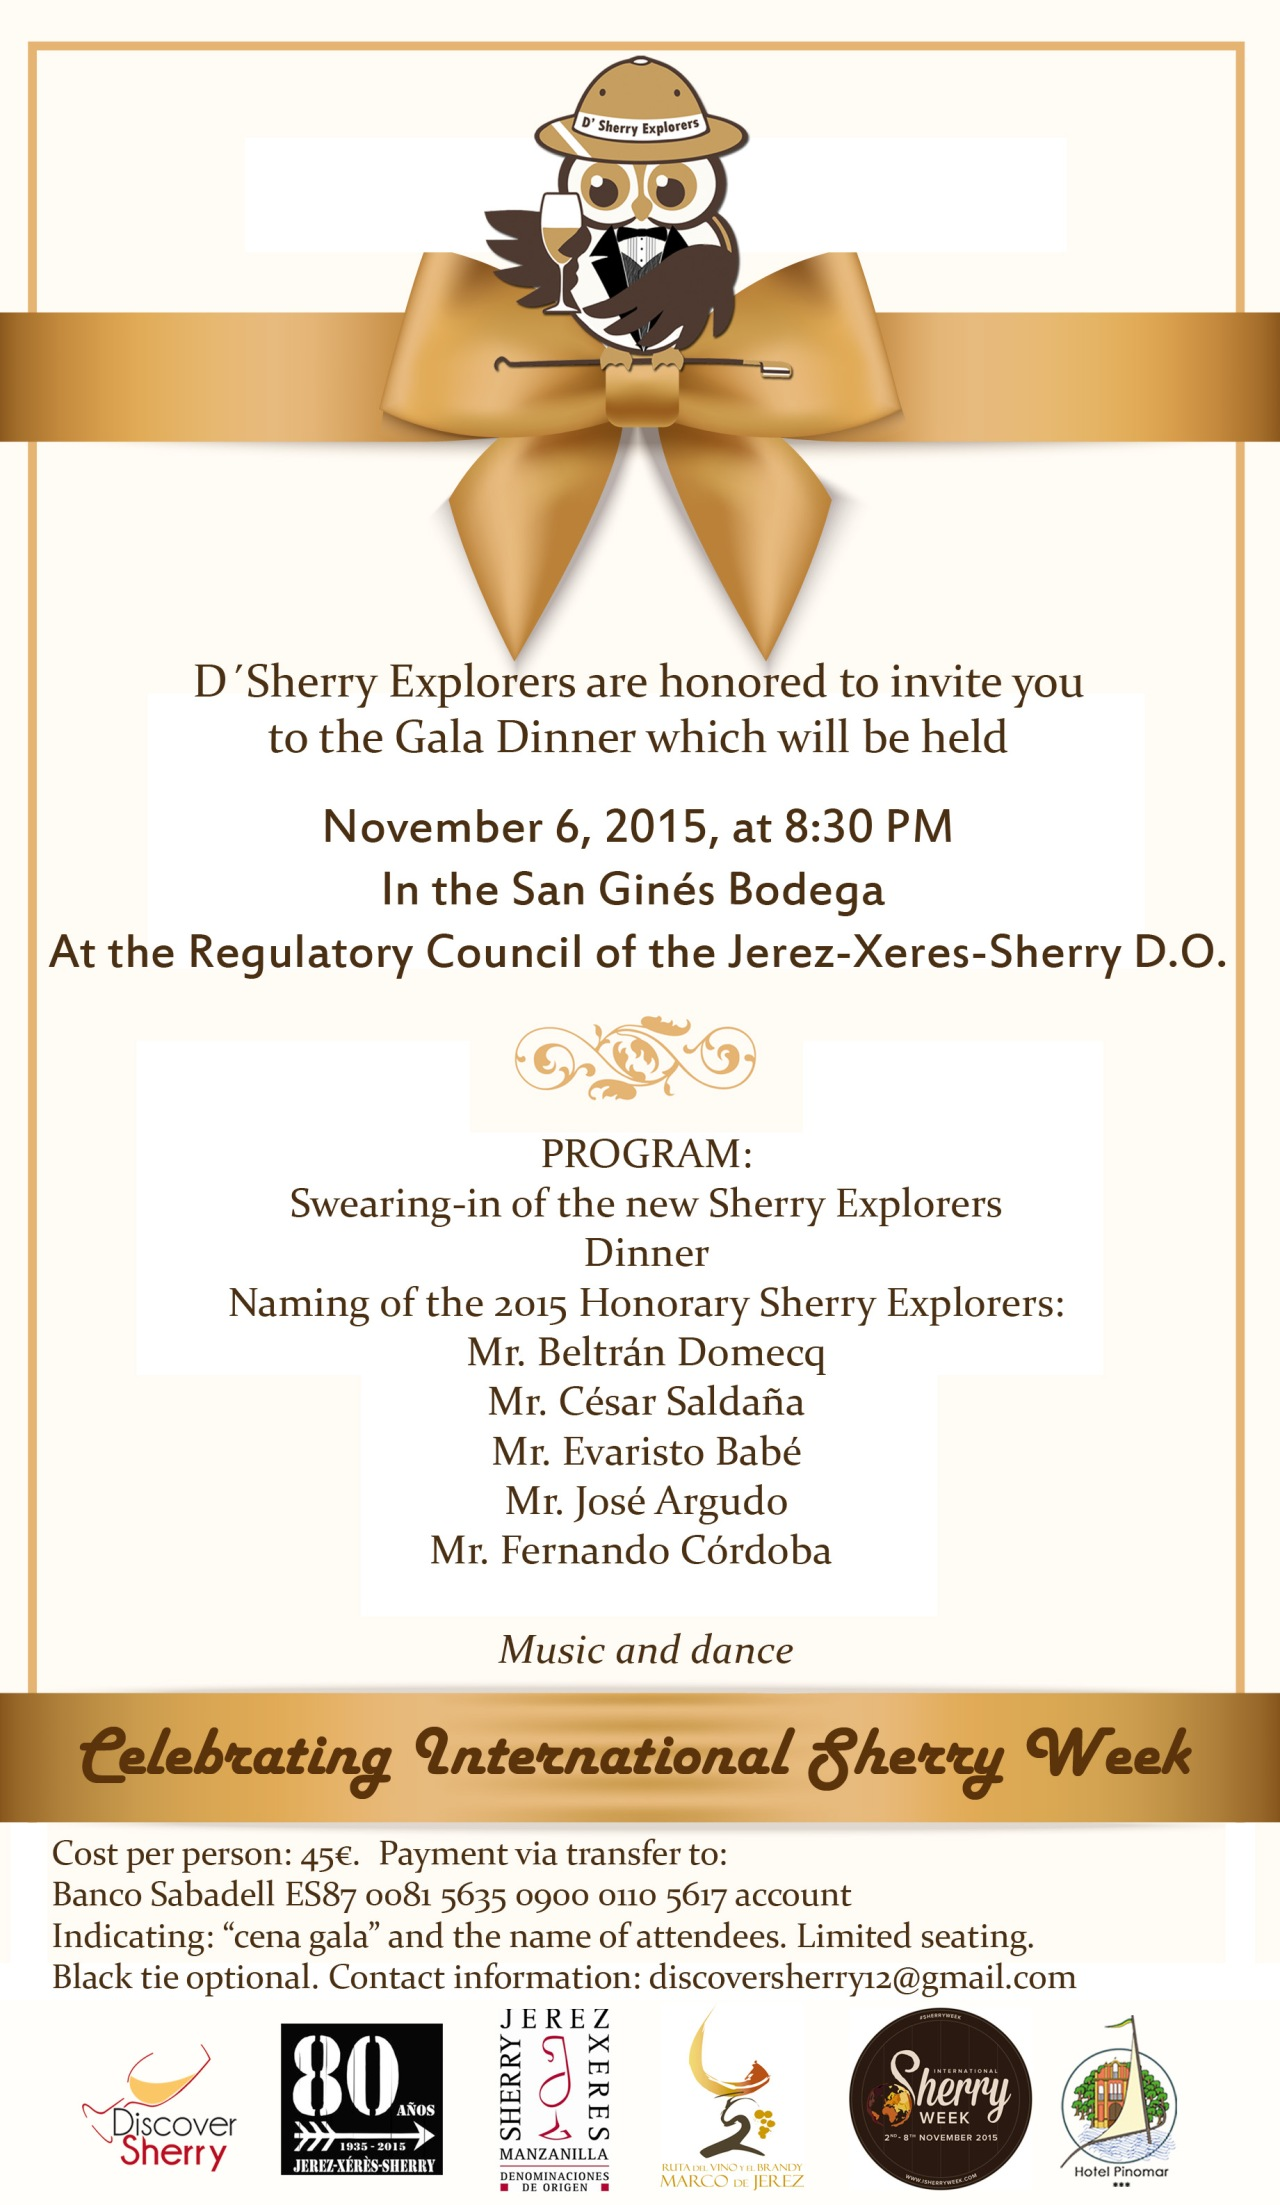 D´Sherry Explorers Gala Dinner at the Bodega San Ginés in Jerez